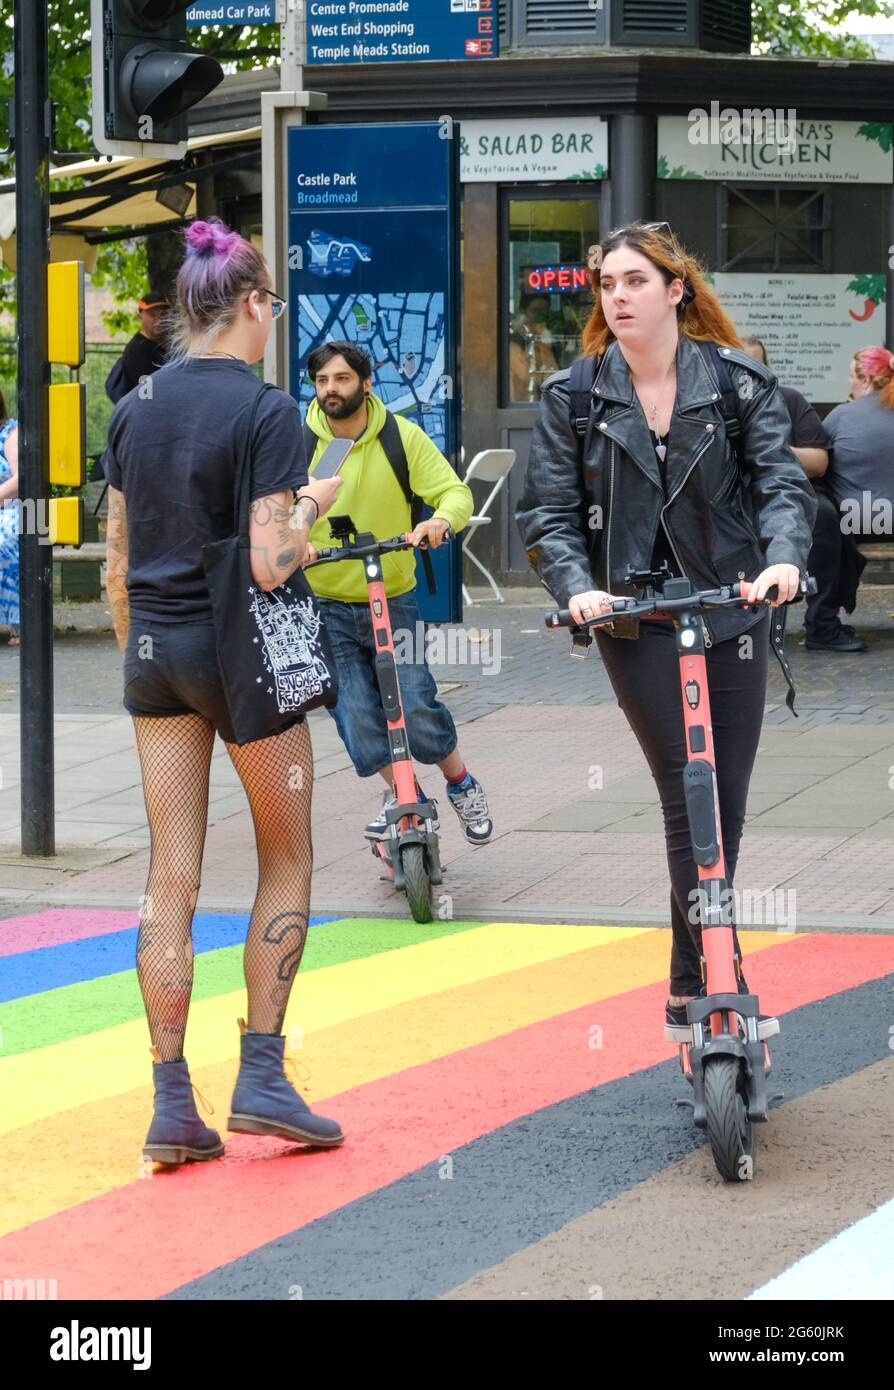 bristol-uk-1st-july-2021-bristol-starts-to-celebrate-pride-month-by-repainting-a-pedestrian-crossing-in-the-rainbow-colours-of-the-lgbtq-pride-movement-vibrant-fashion-and-e-scooters-are-also-very-bristol-thing-credit-jmf-newsalamy-live-news-2G60JRK.jpg